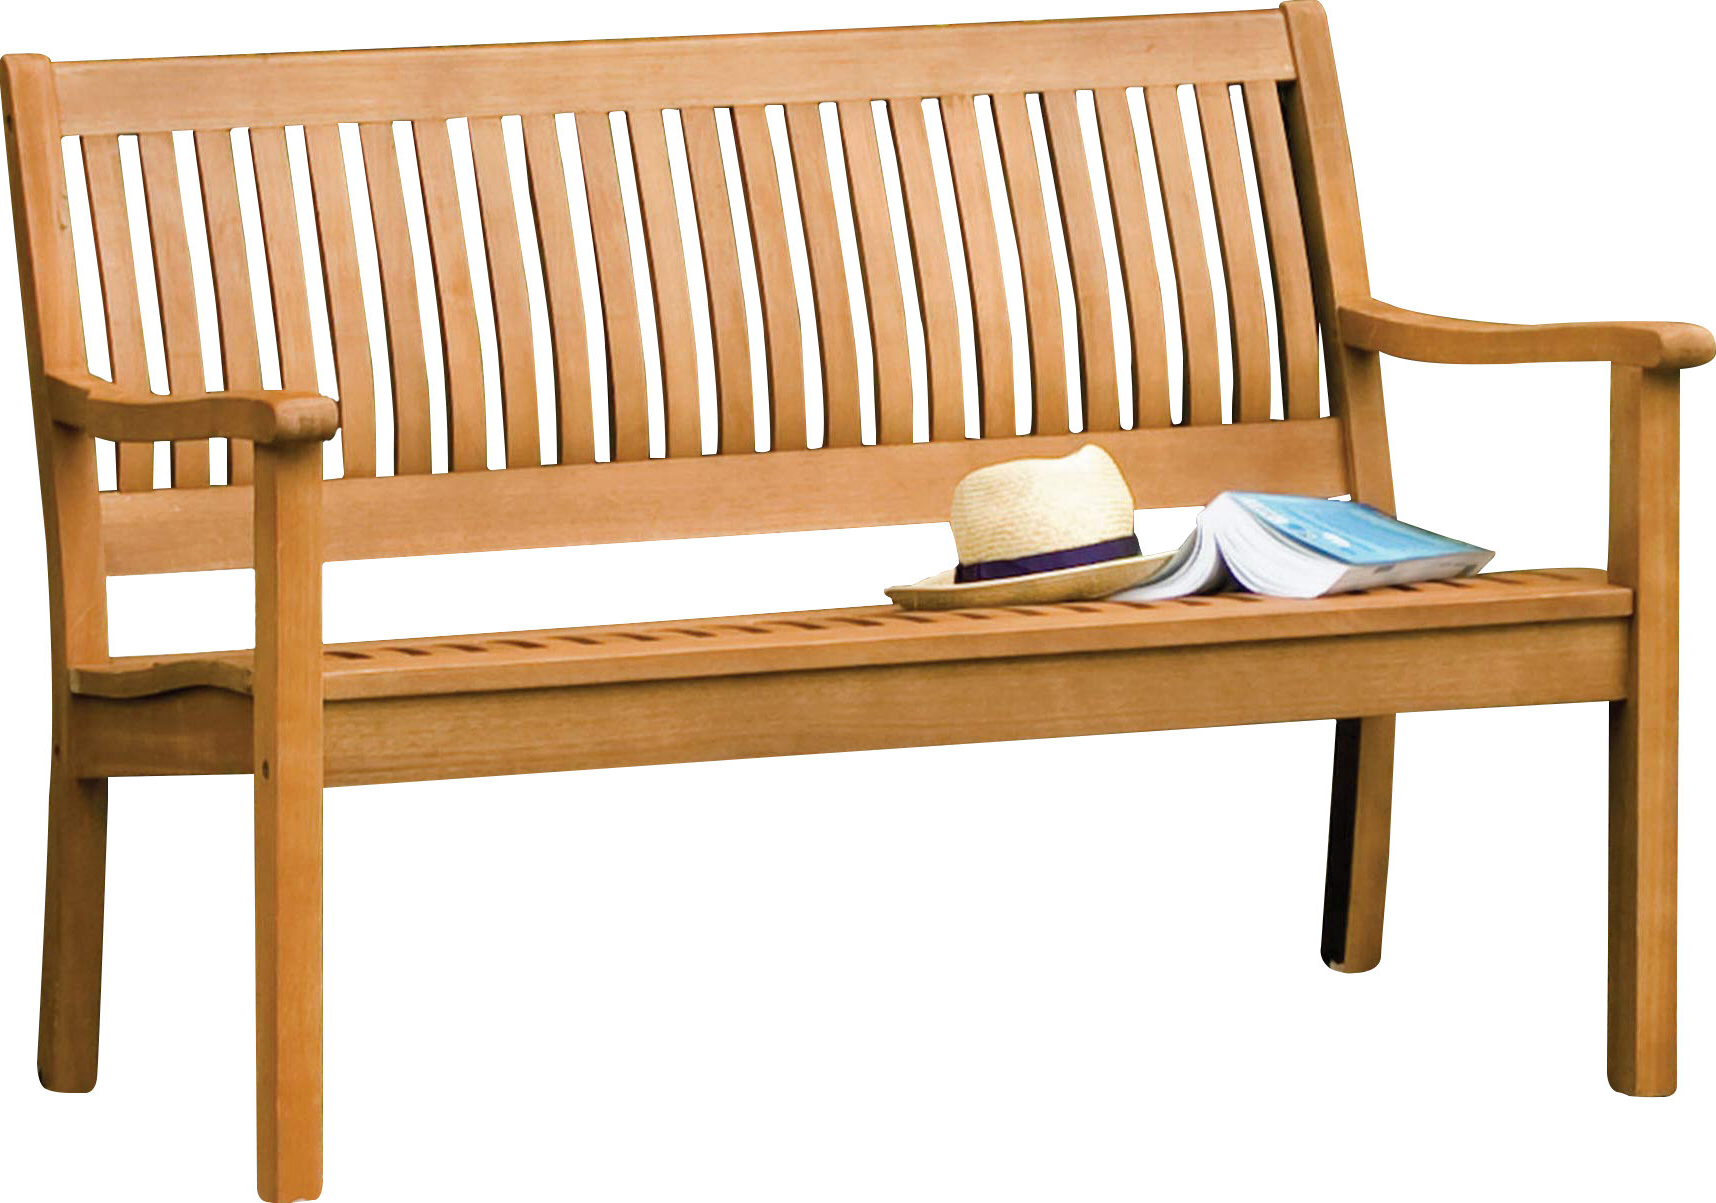 Linntown Garden Bench With Most Current Alfon Wood Garden Benches (View 11 of 30)